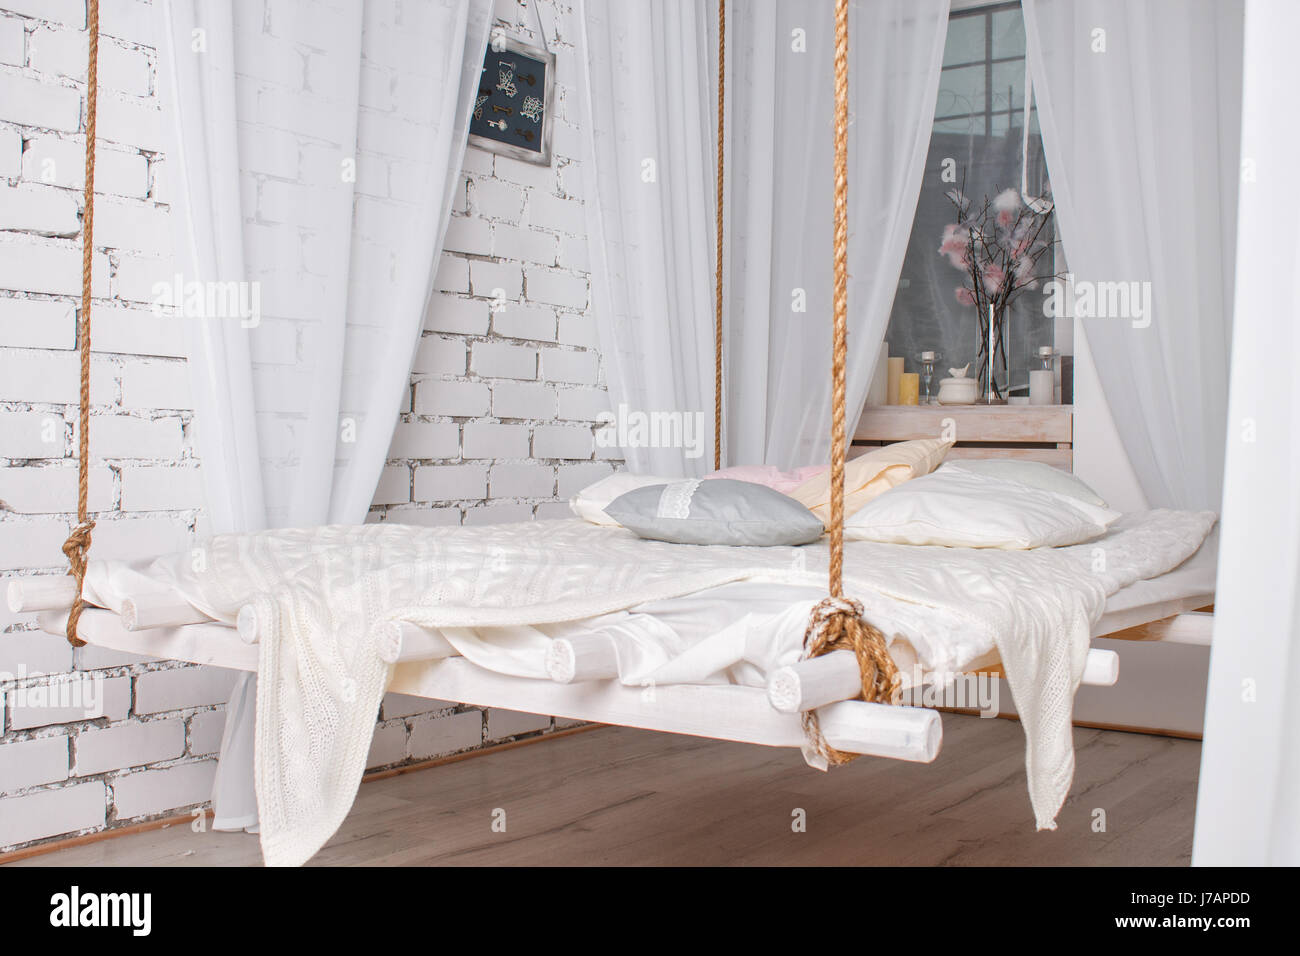 white loft interior with hanging bed suspended from the ceiling J7APDD